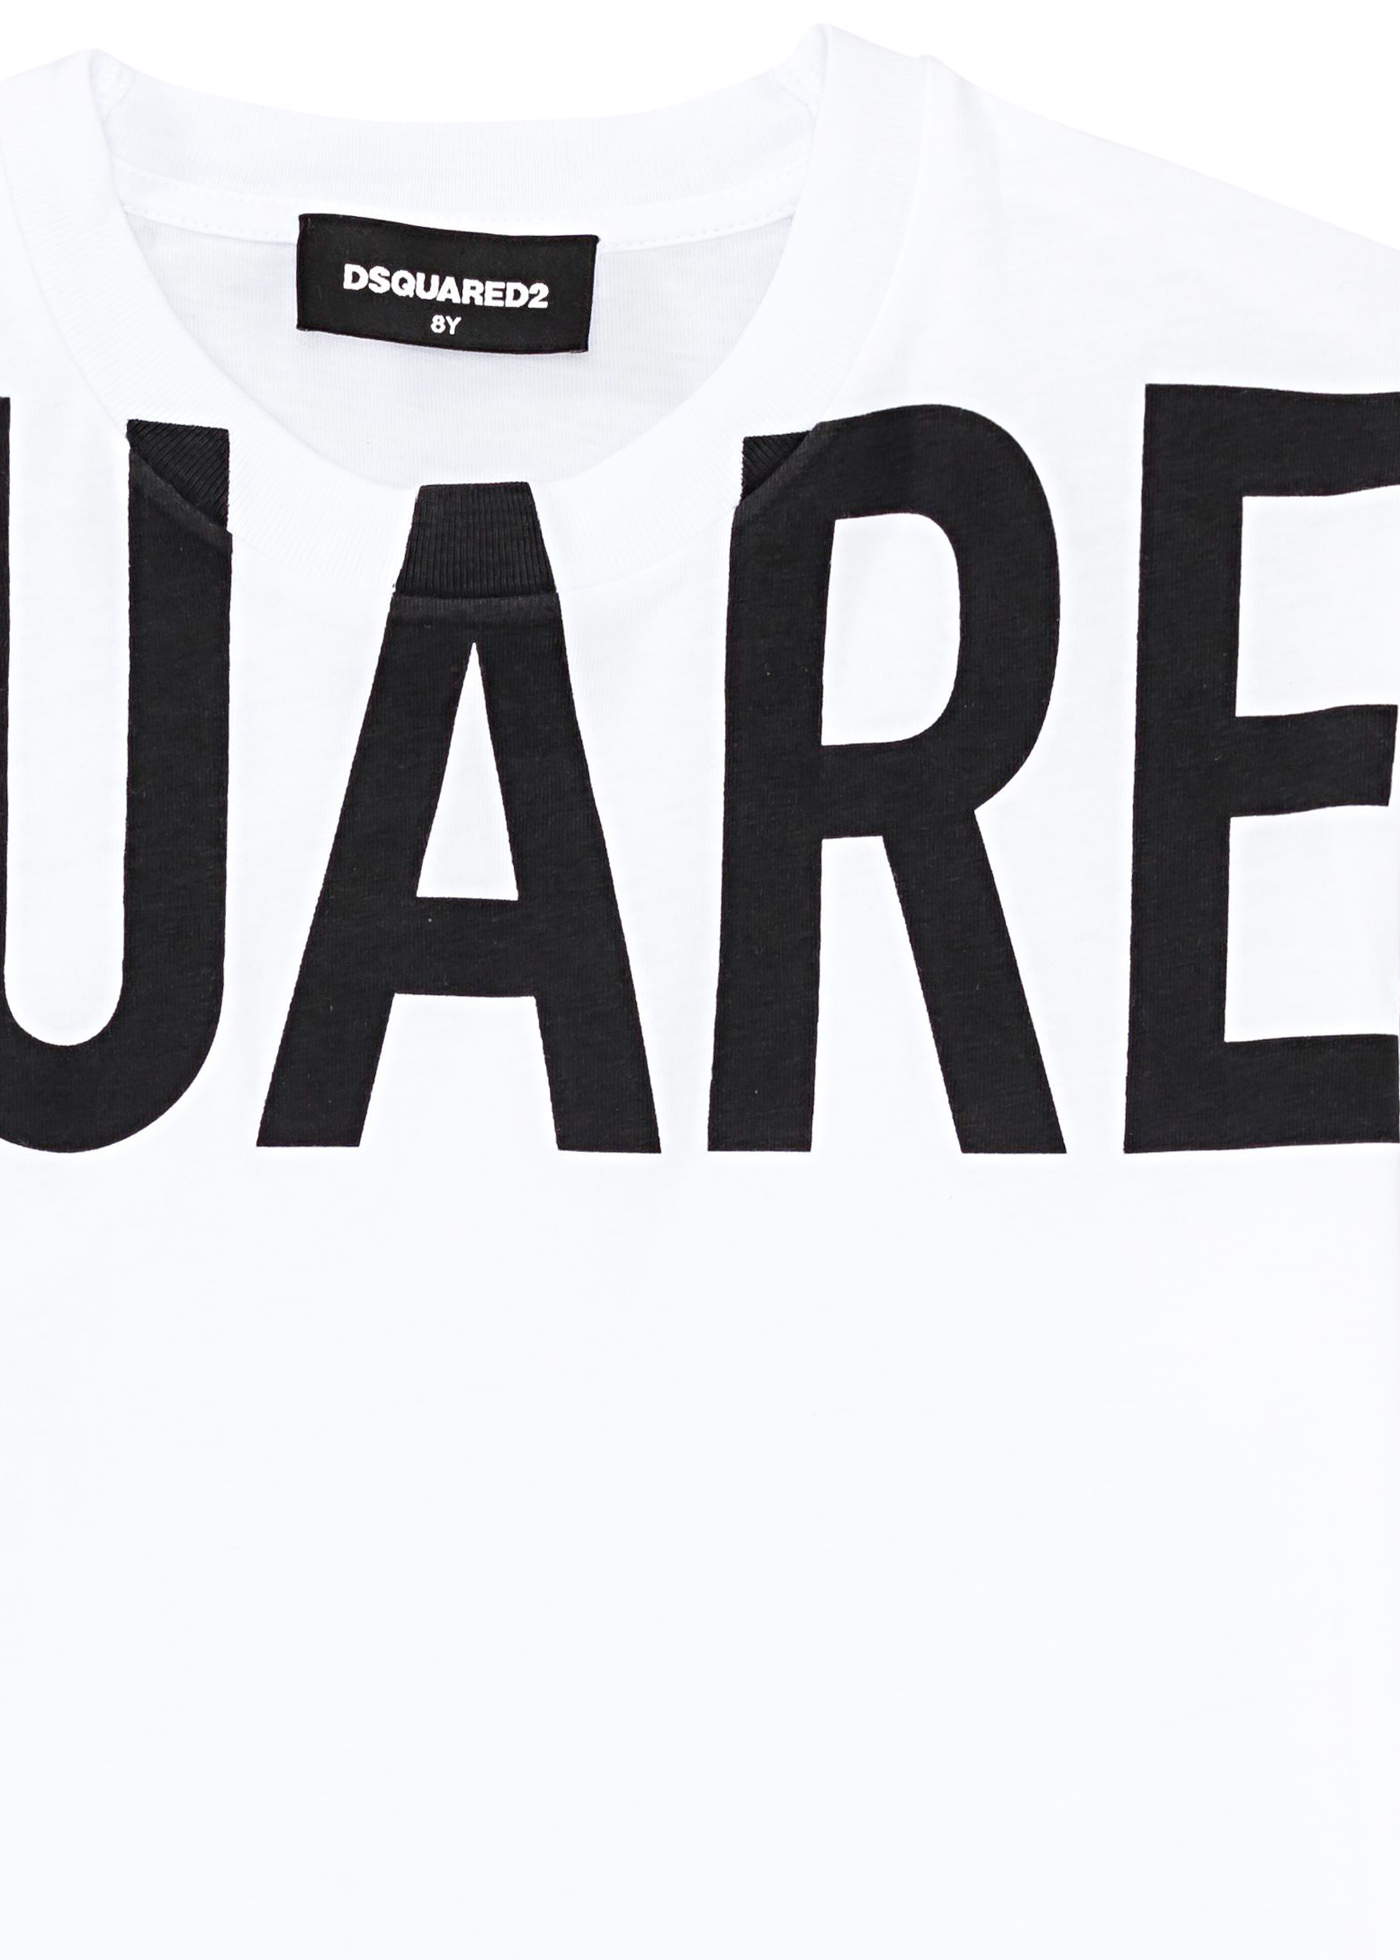 DSQUARED2 Tee image number 2